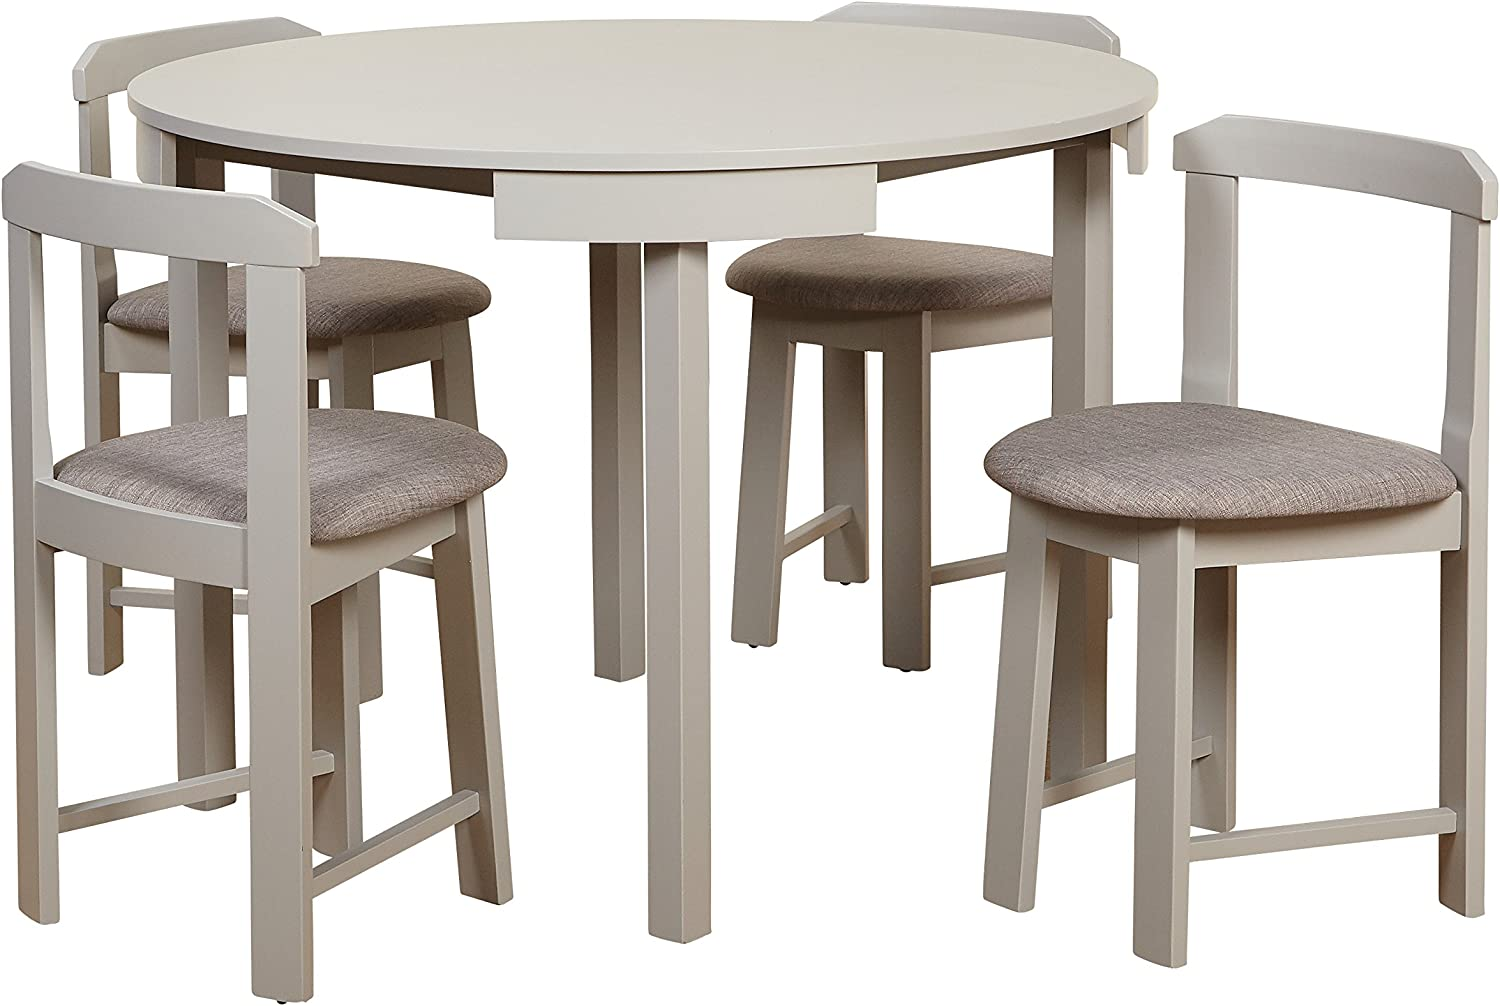 Target Marketing Systems Zuma Collection Compact Set 5-Piece Round Nesting Dining Table Chairs, Gray